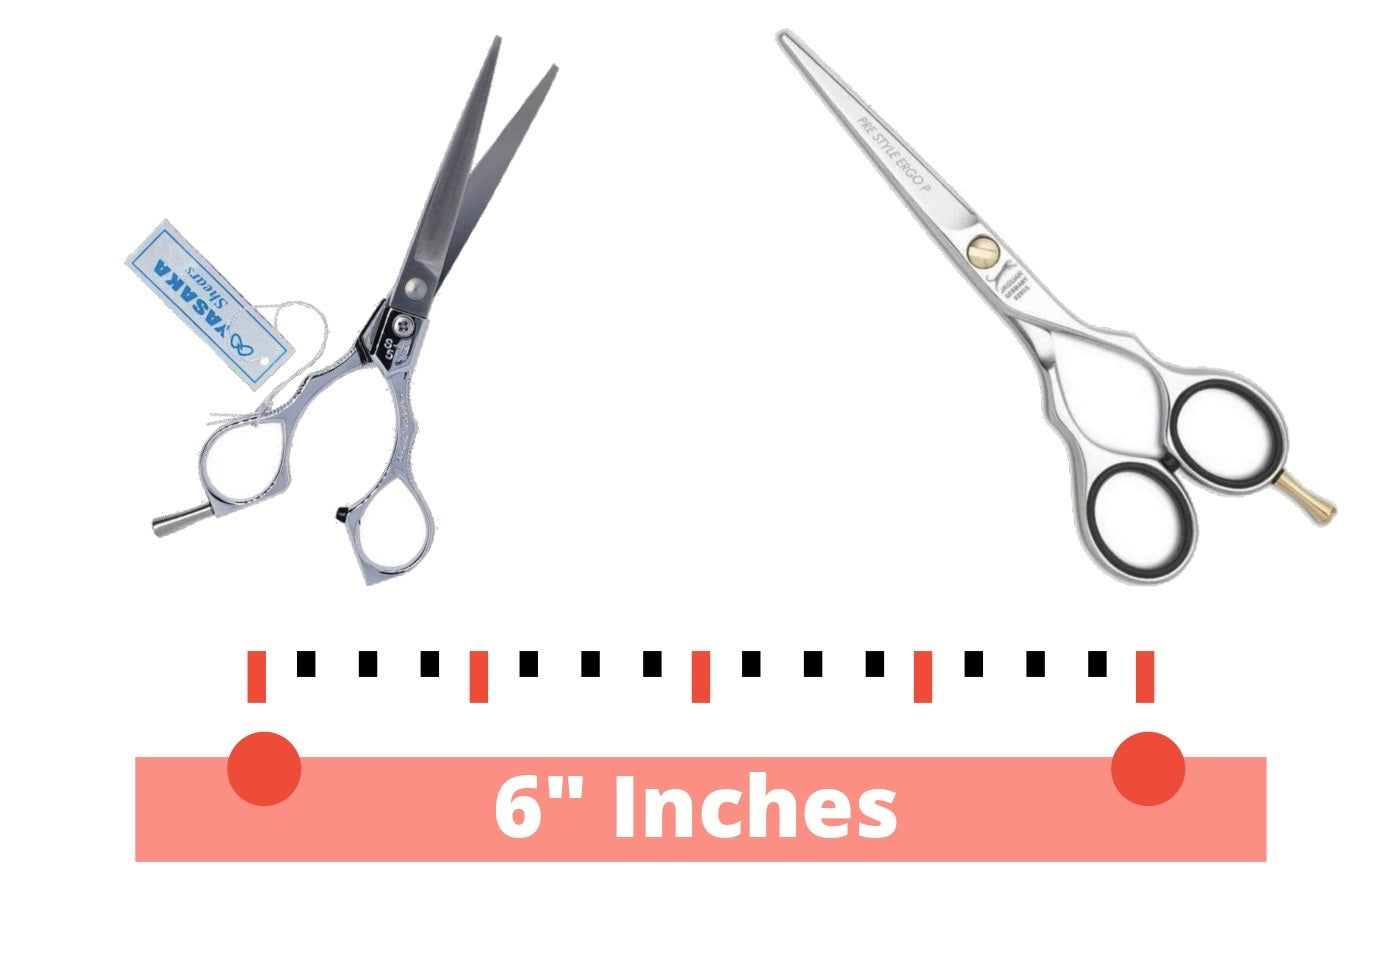 6 Inch Hairdressing Scissors